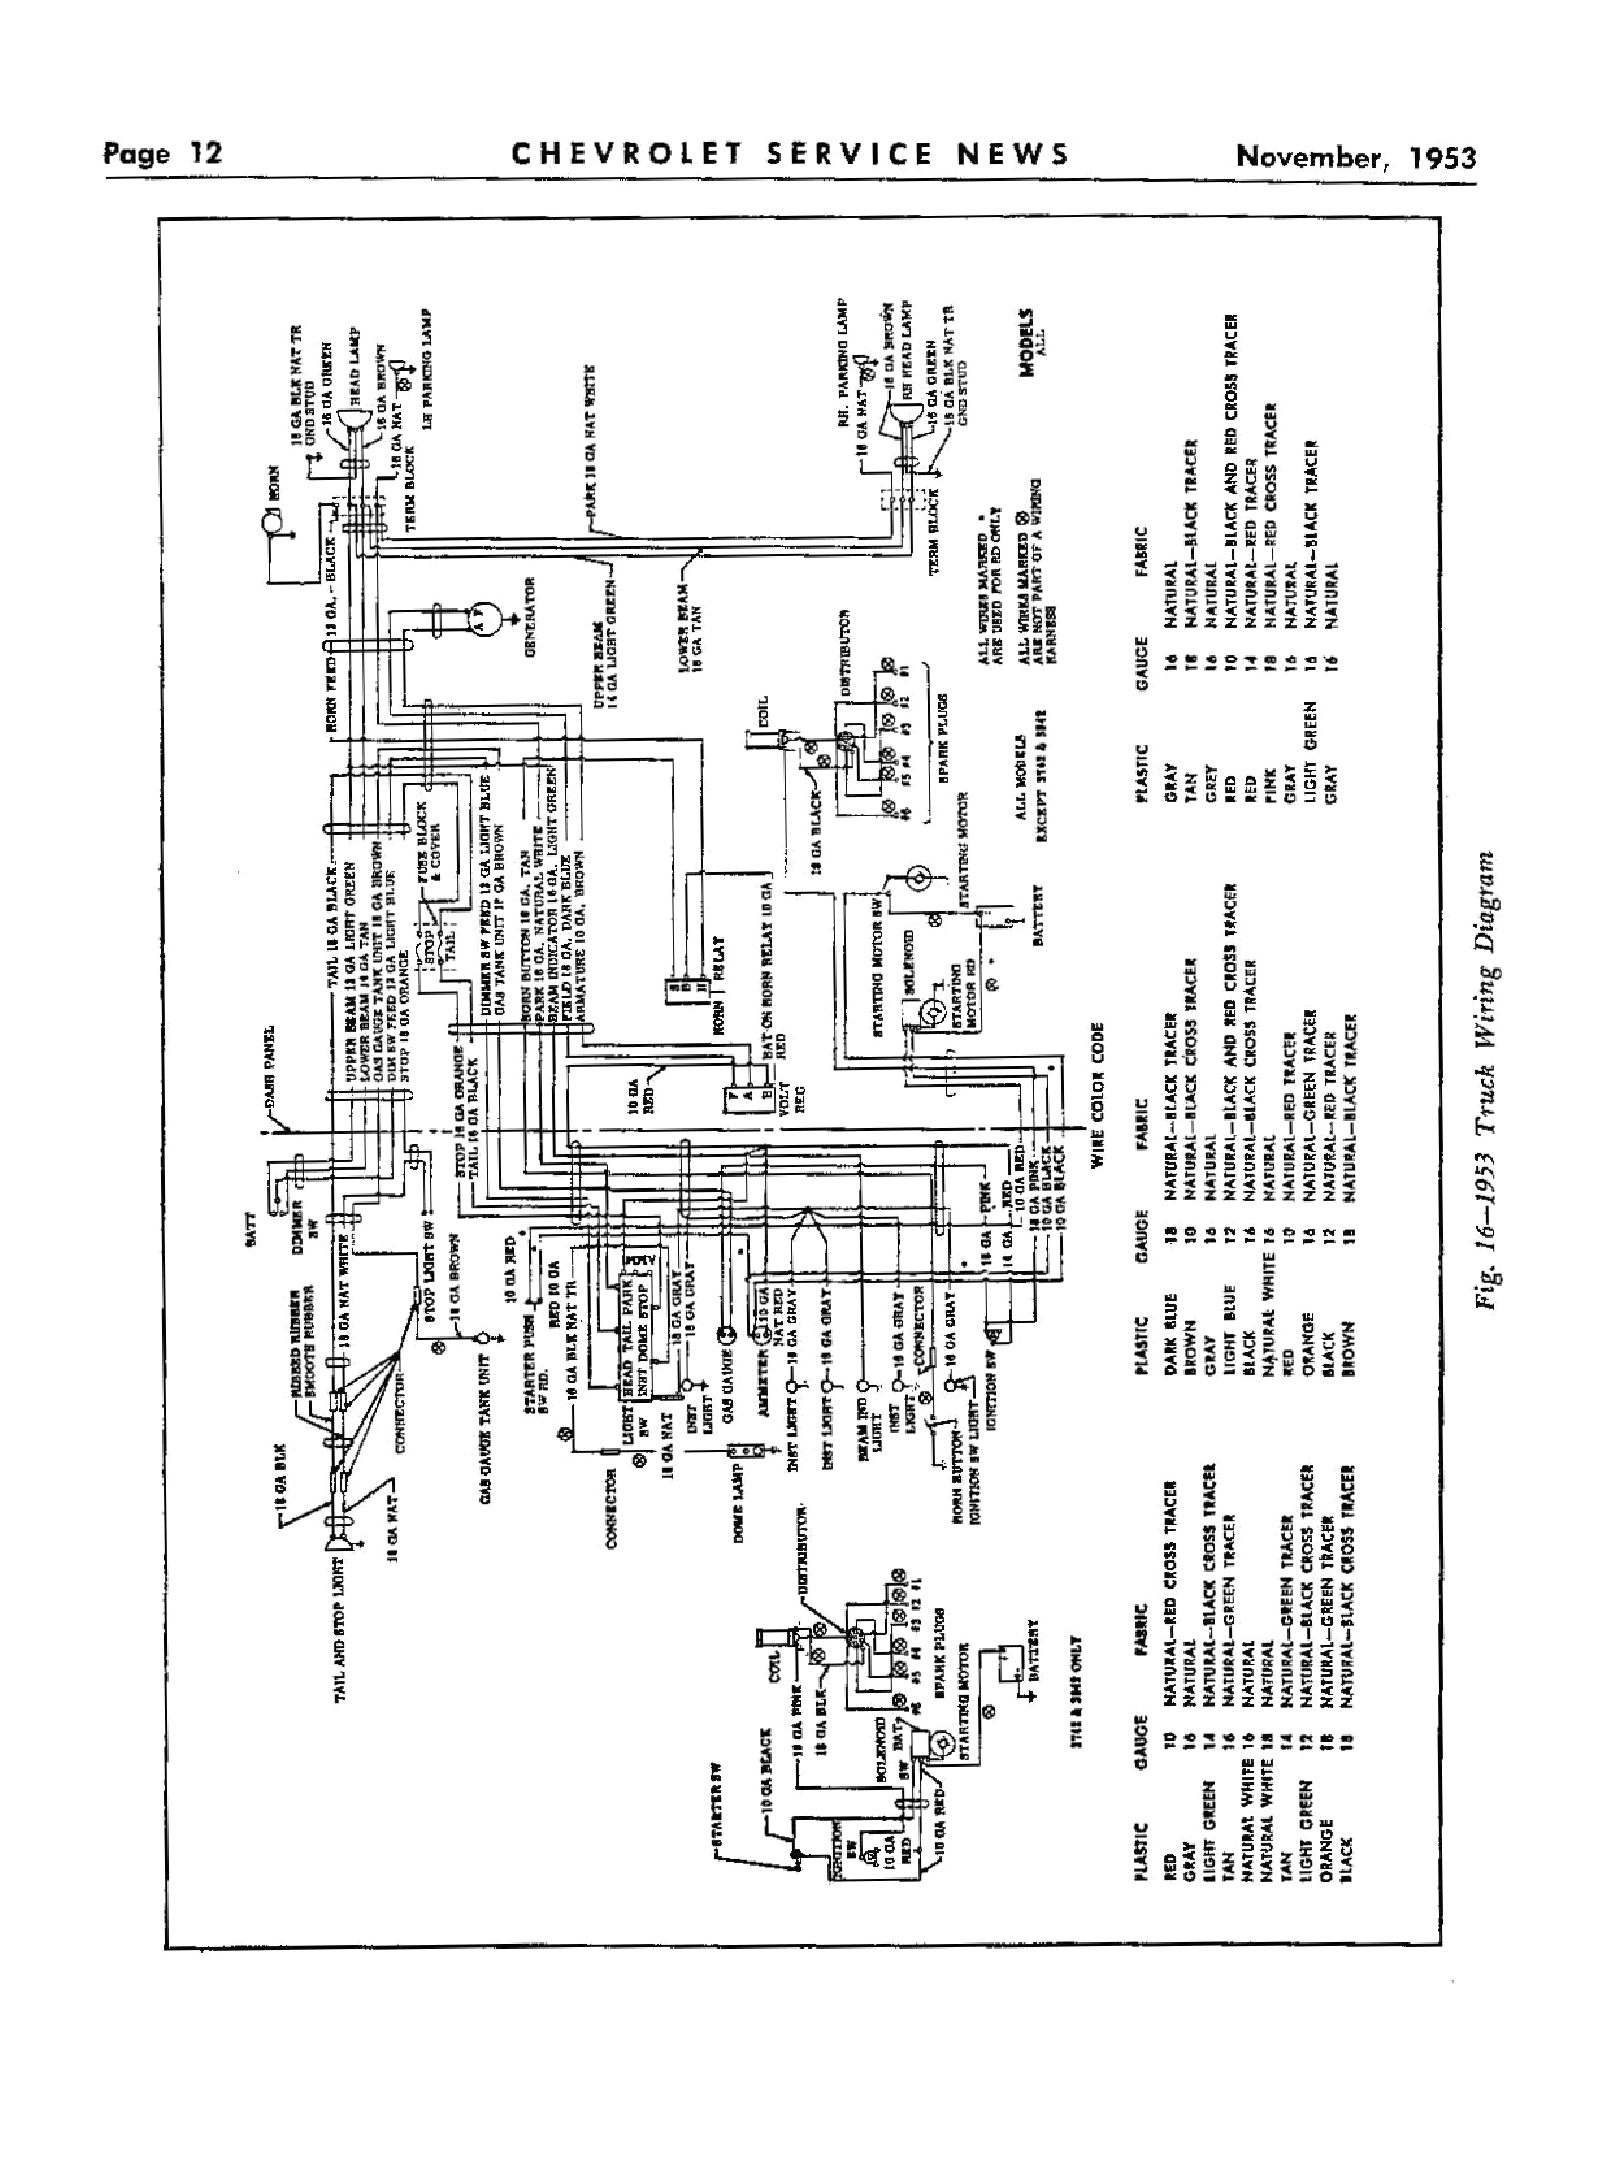 91 chevy truck 1500 wire diagram for the ignition switch 53 chevy truck light wire diagram 1953 solenoid wiring - the 1947 - present chevrolet & gmc ... #3